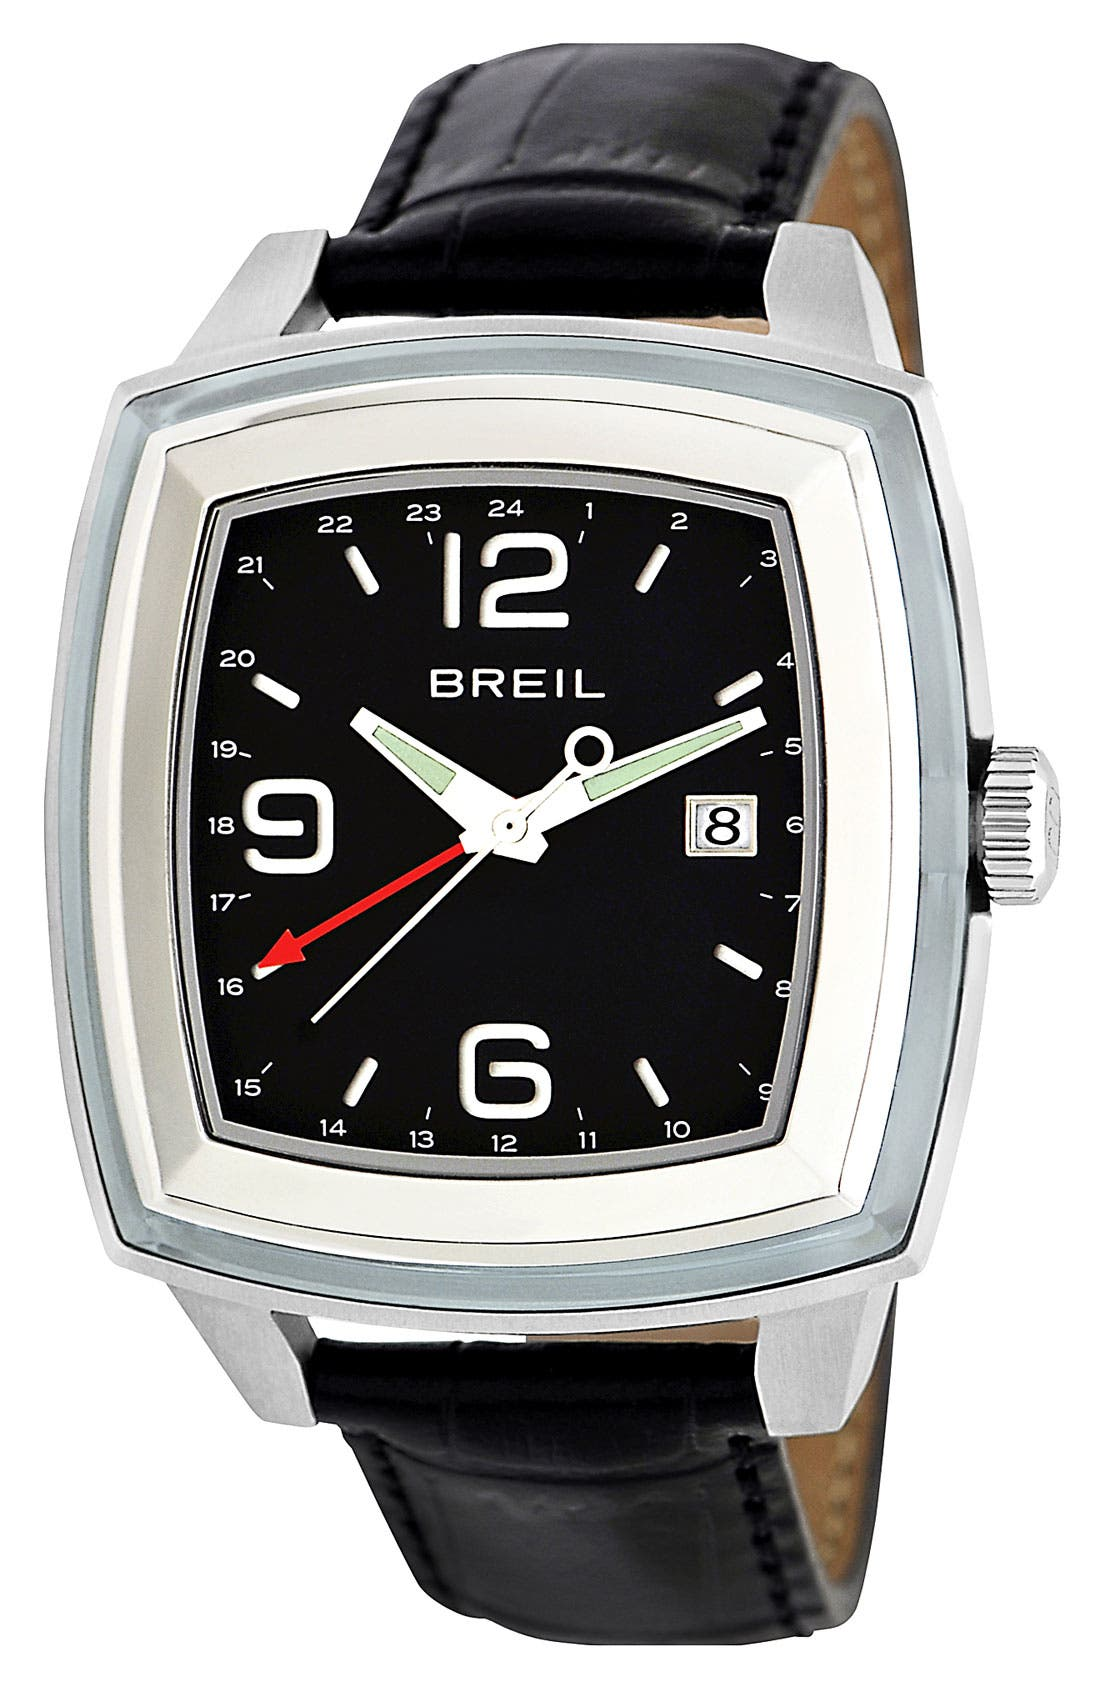 Main Image - Breil 'Orchestra' Large Square Dual Time Watch, 42mm x 52mm